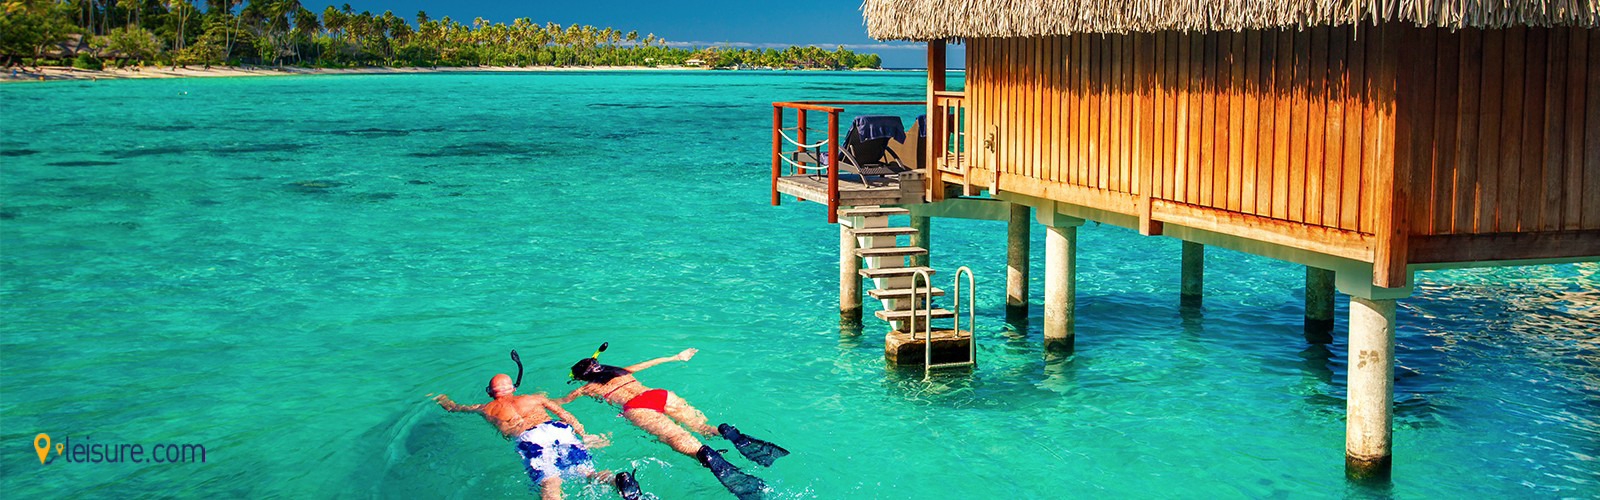 Best 7 Days Bora Bora Vacation in 2019